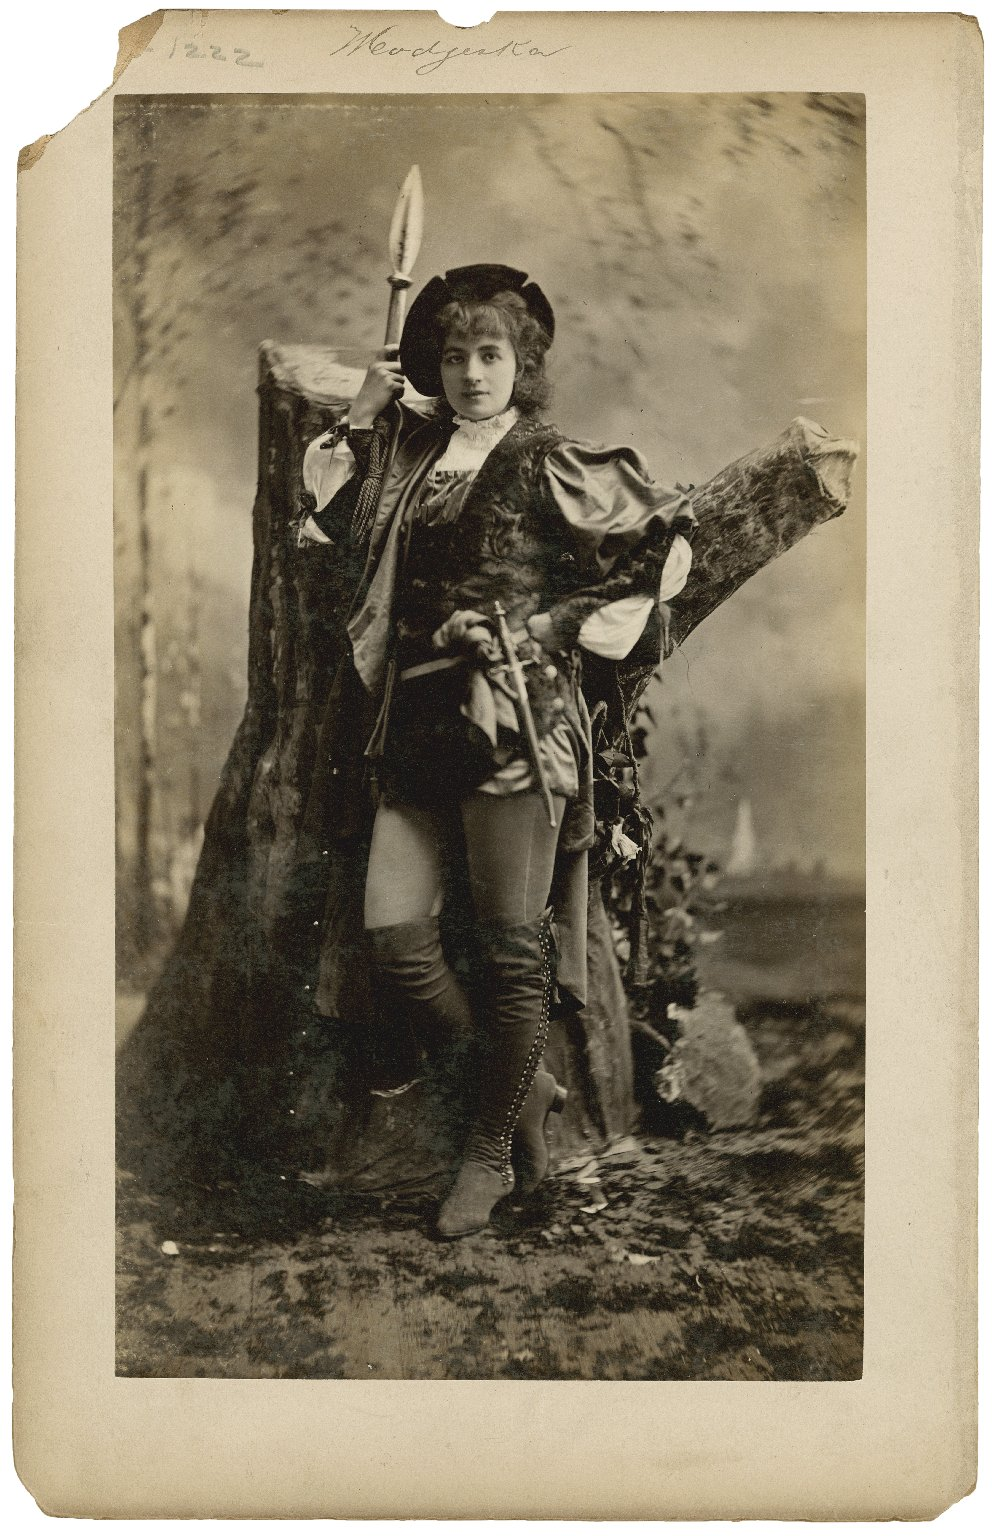 Modjeska [possibly as Rosalind in Shakespeare's As you like it] [graphic] / Mora.